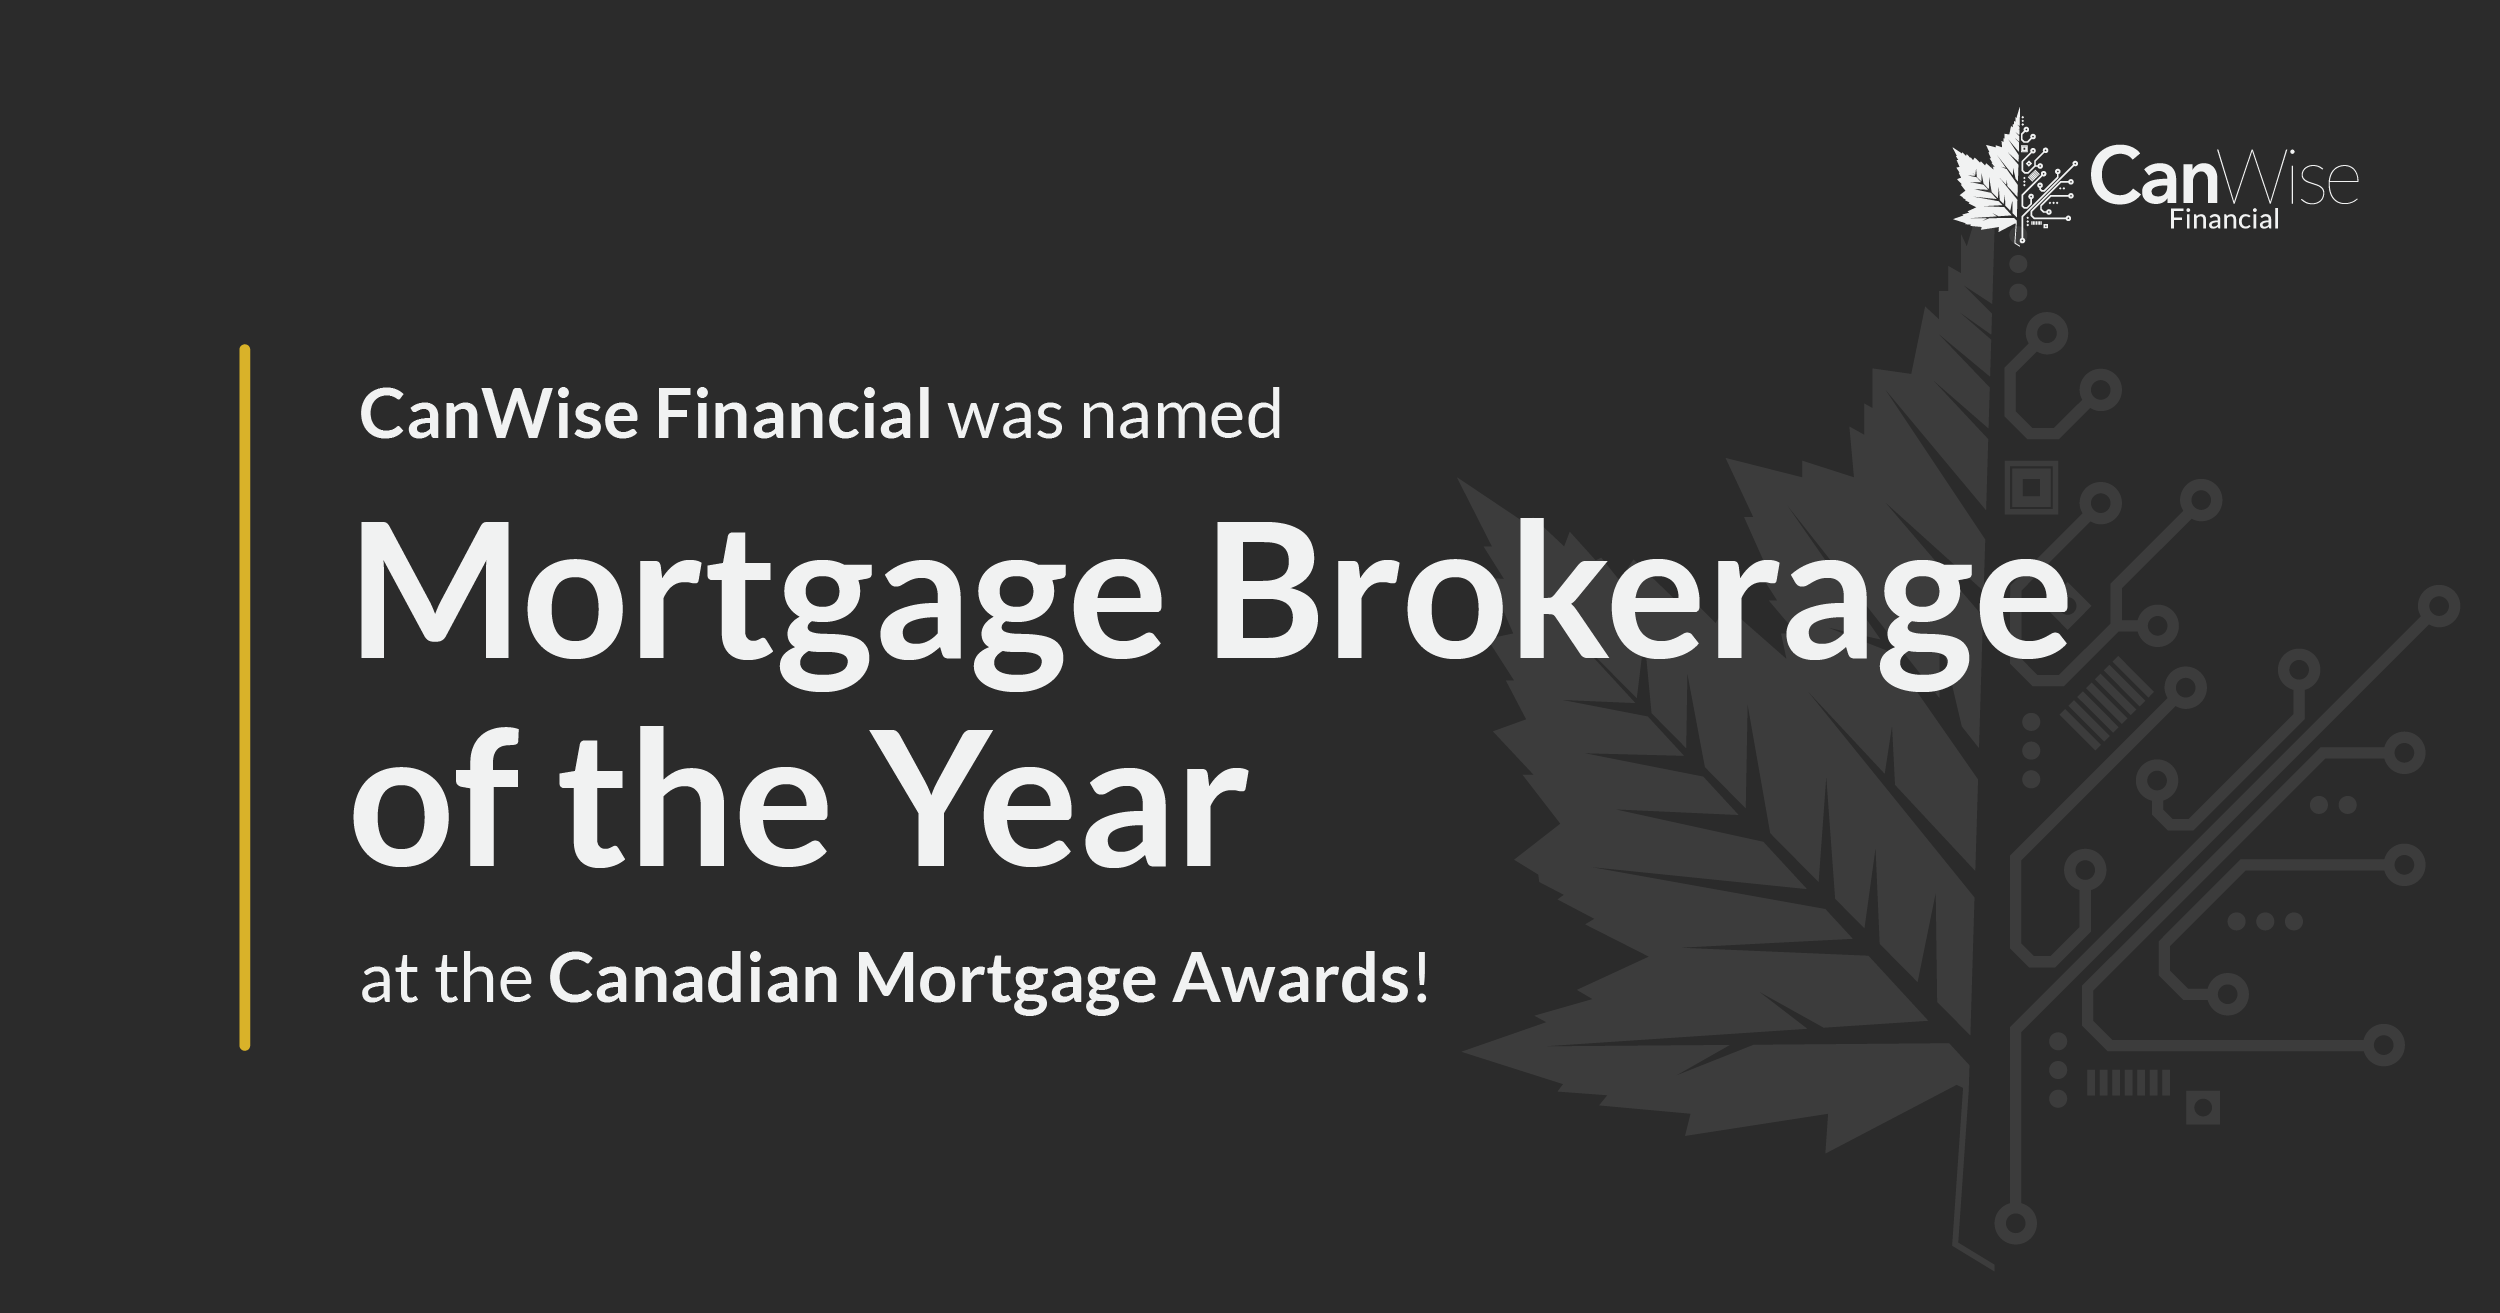 CanWise Financial named Mortgage Brokerage of the Year at the 2018 Canadian Mortgage Awards